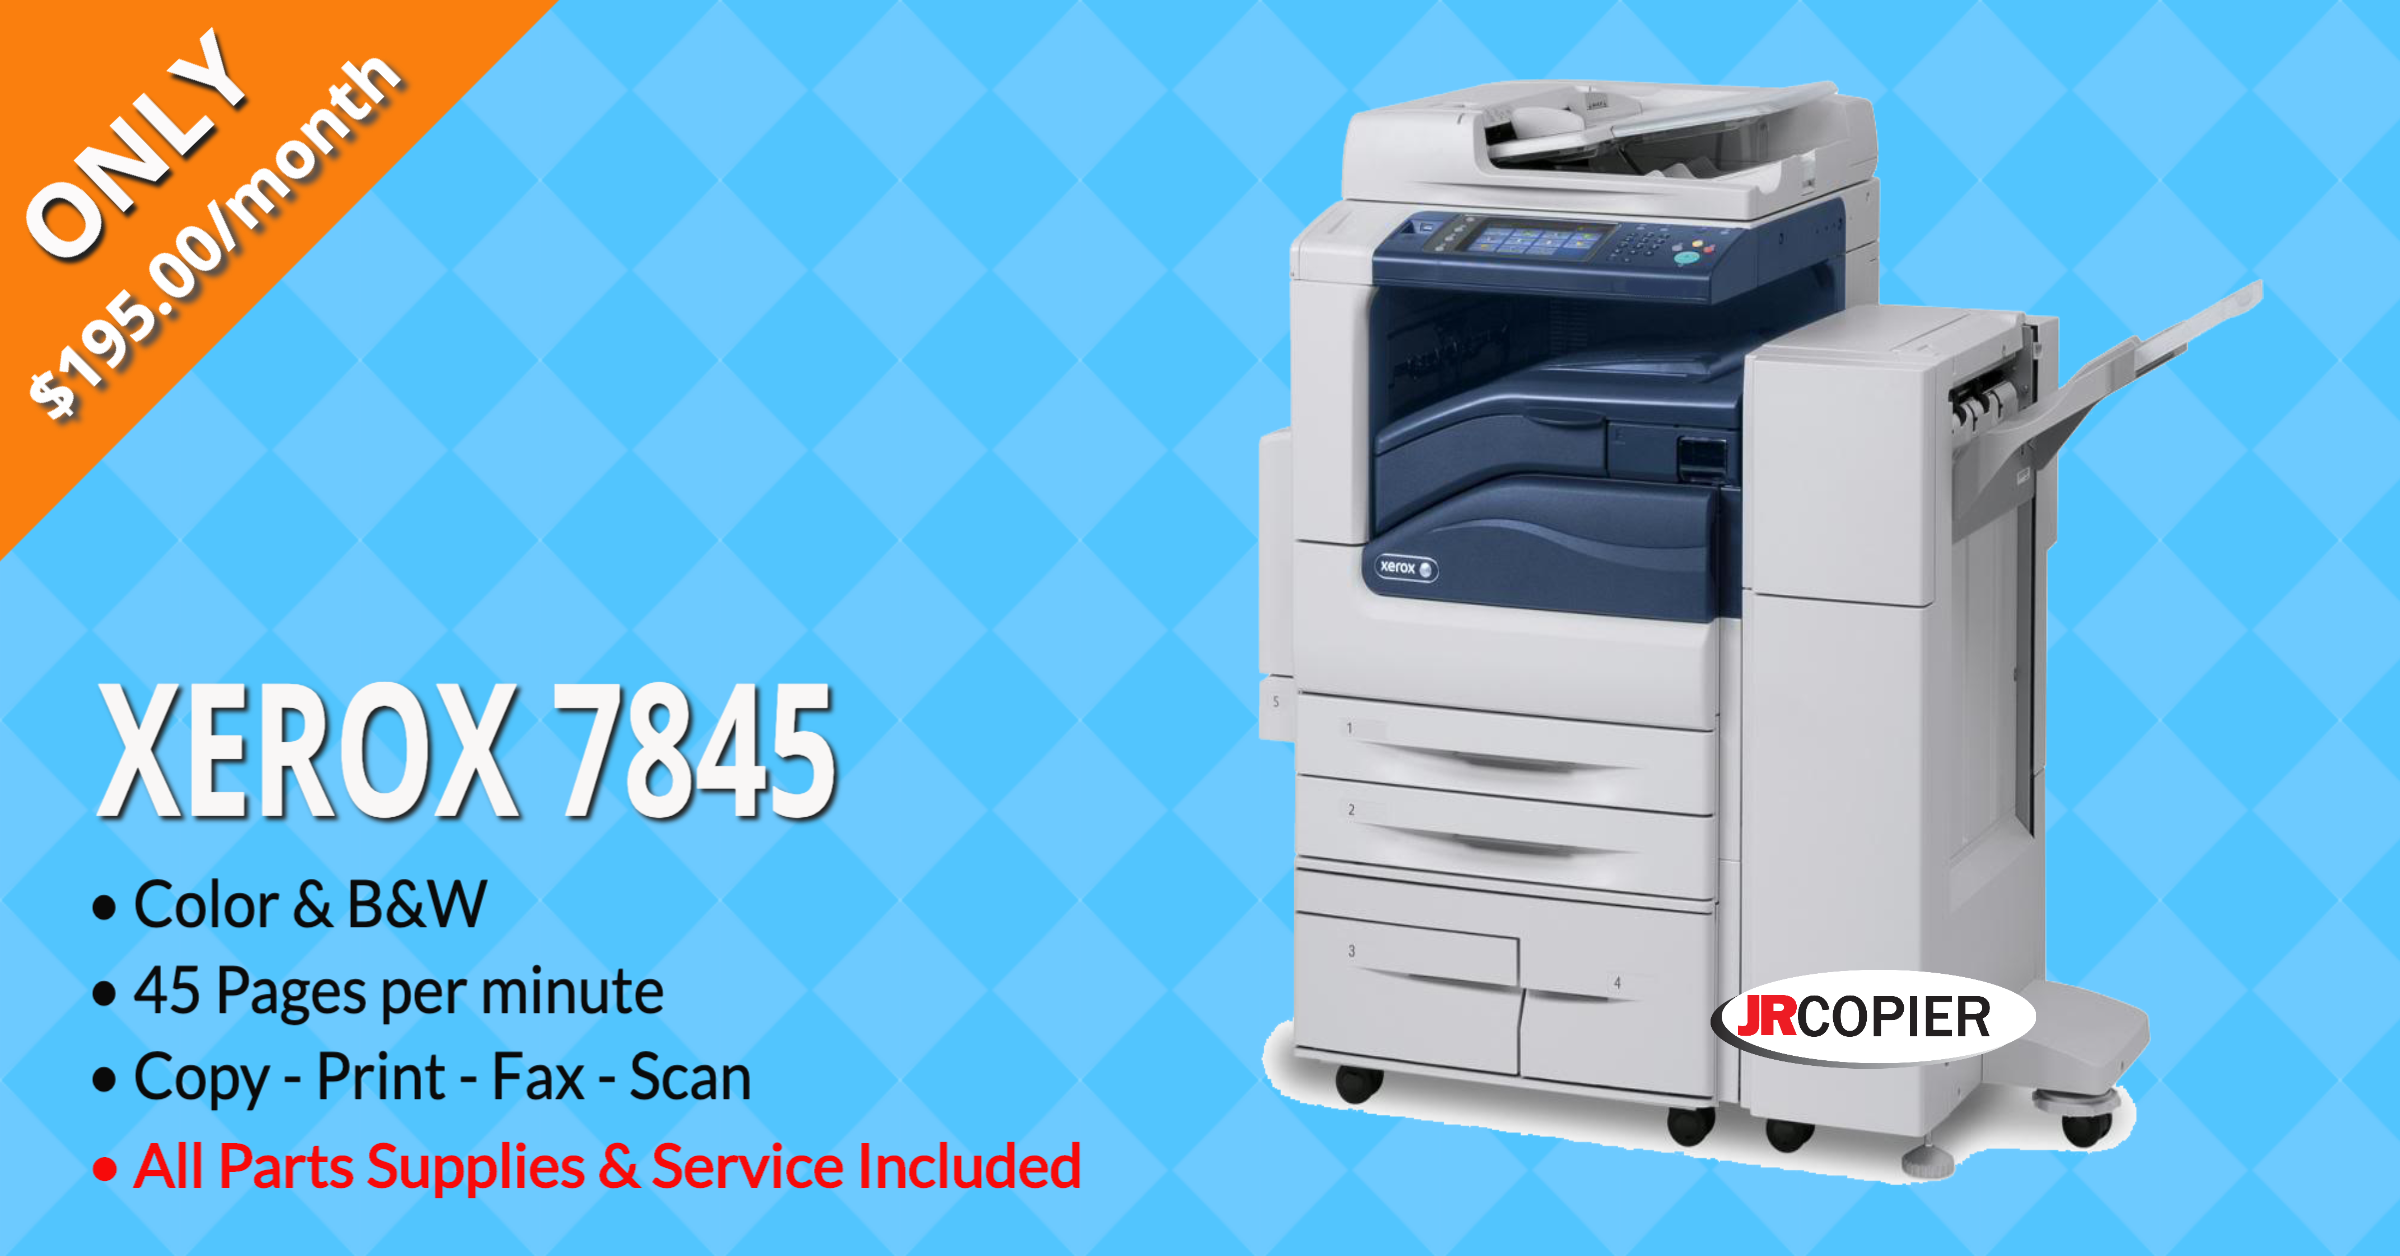 Multifunction Printer Sales 90631, 90632, 90633